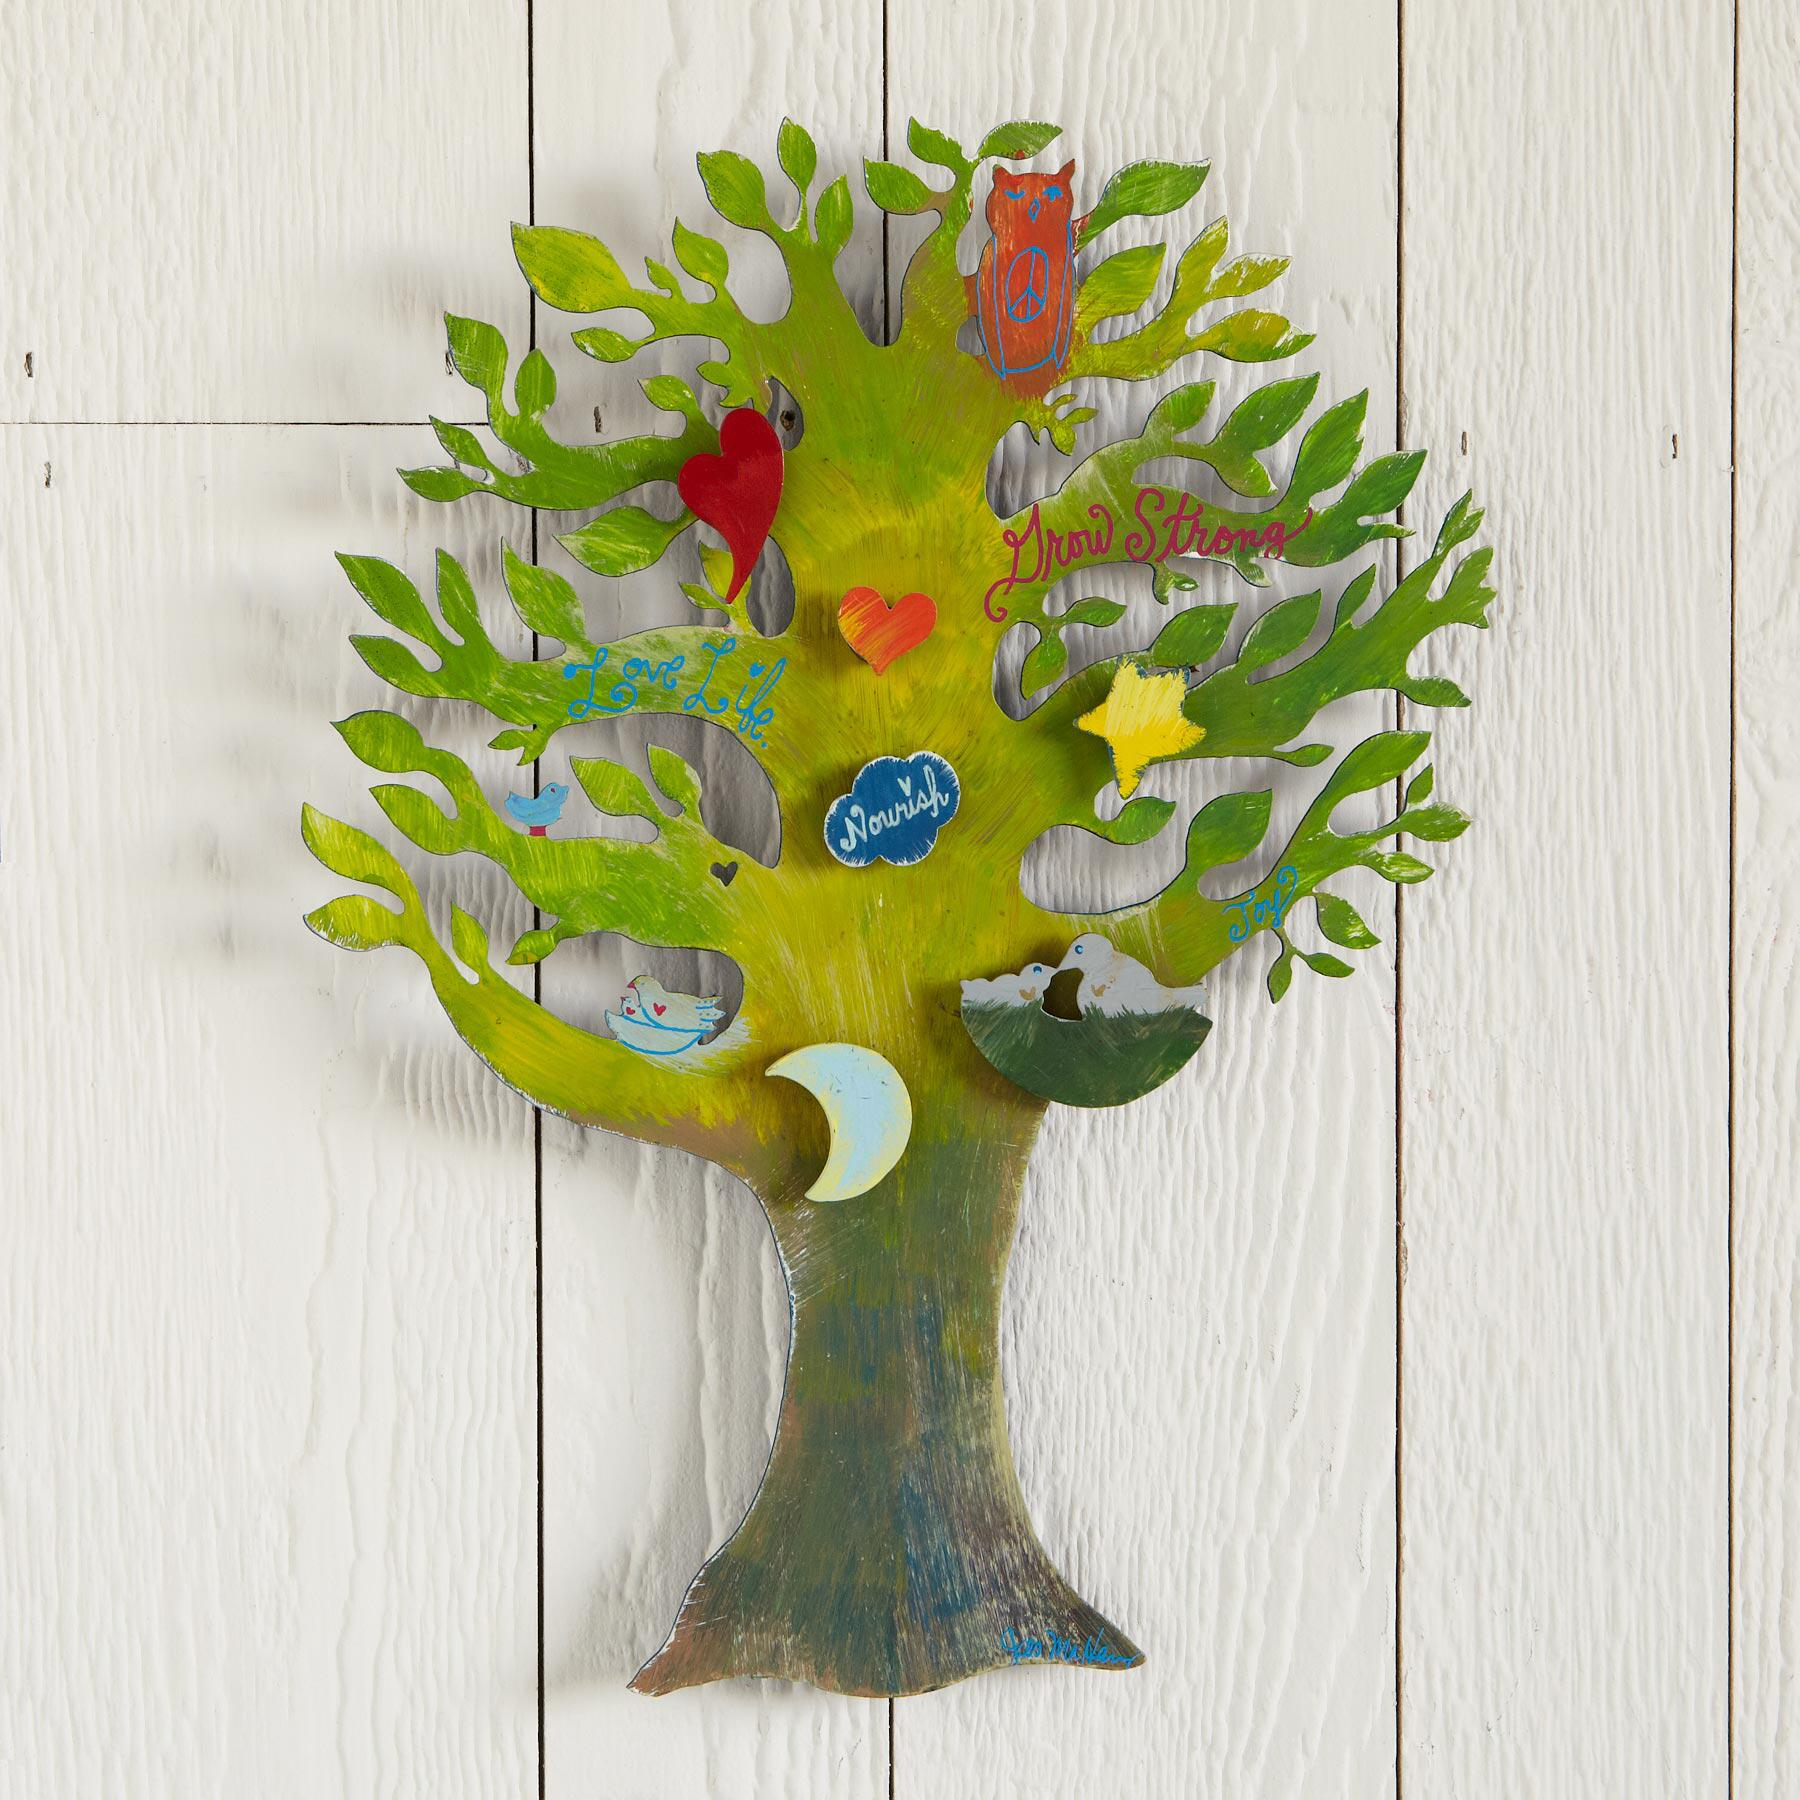 GROW STRONG MAGNET BOARD: View 2